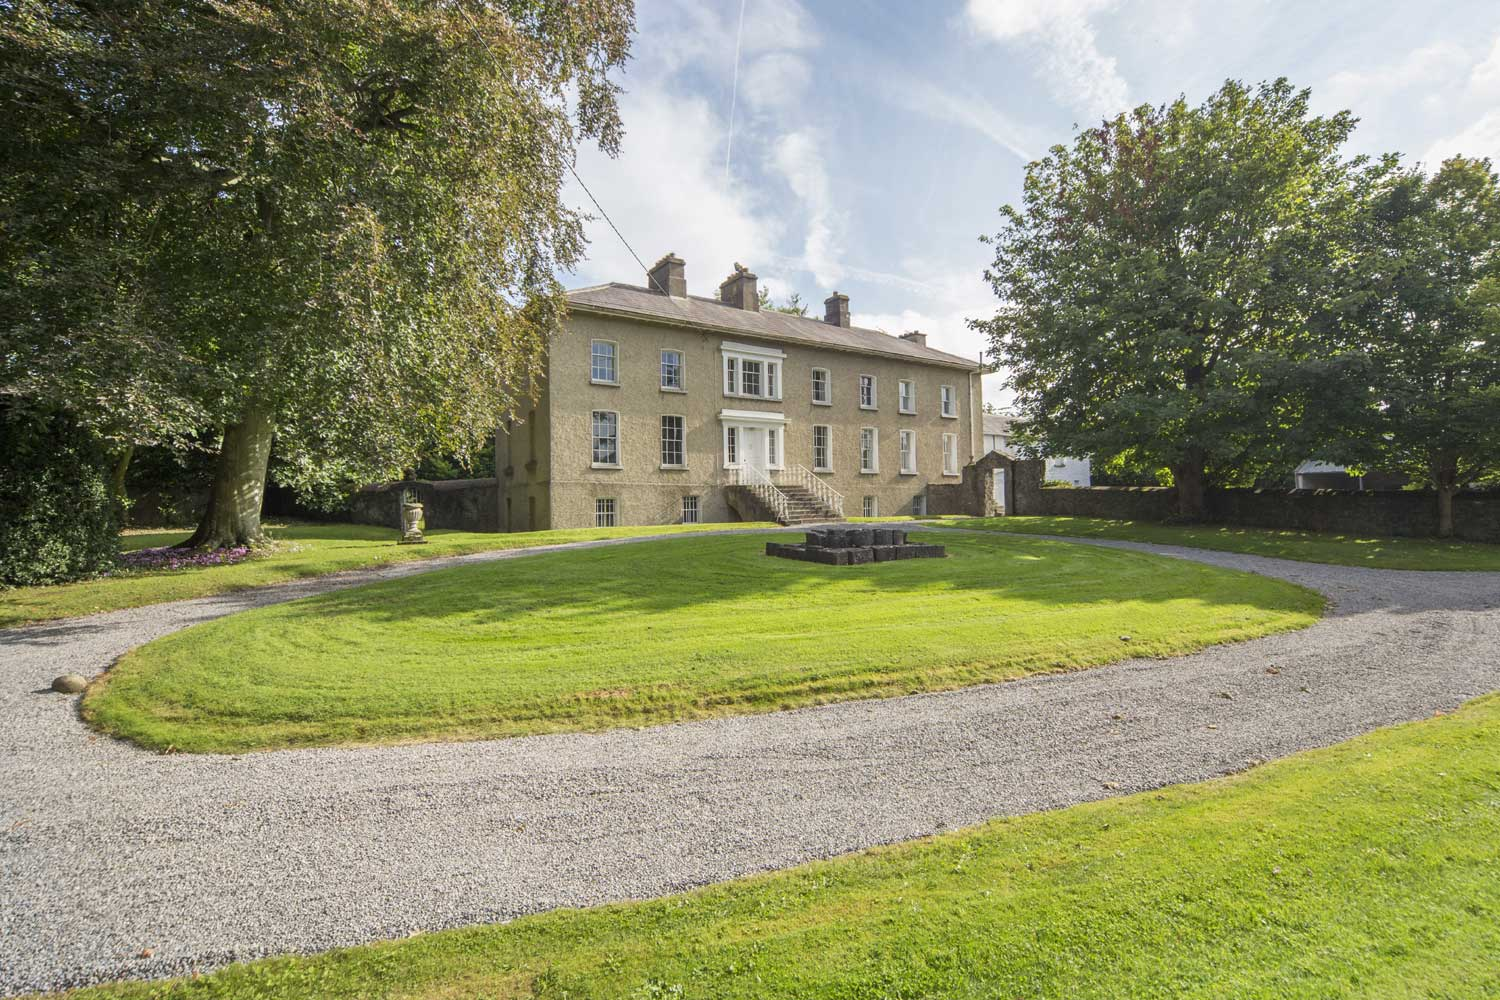 <b>Ireland</b><br/><i>6 Bedrooms, 5,145 sq. ft.</i><br/>1720s Georgian-style Country House